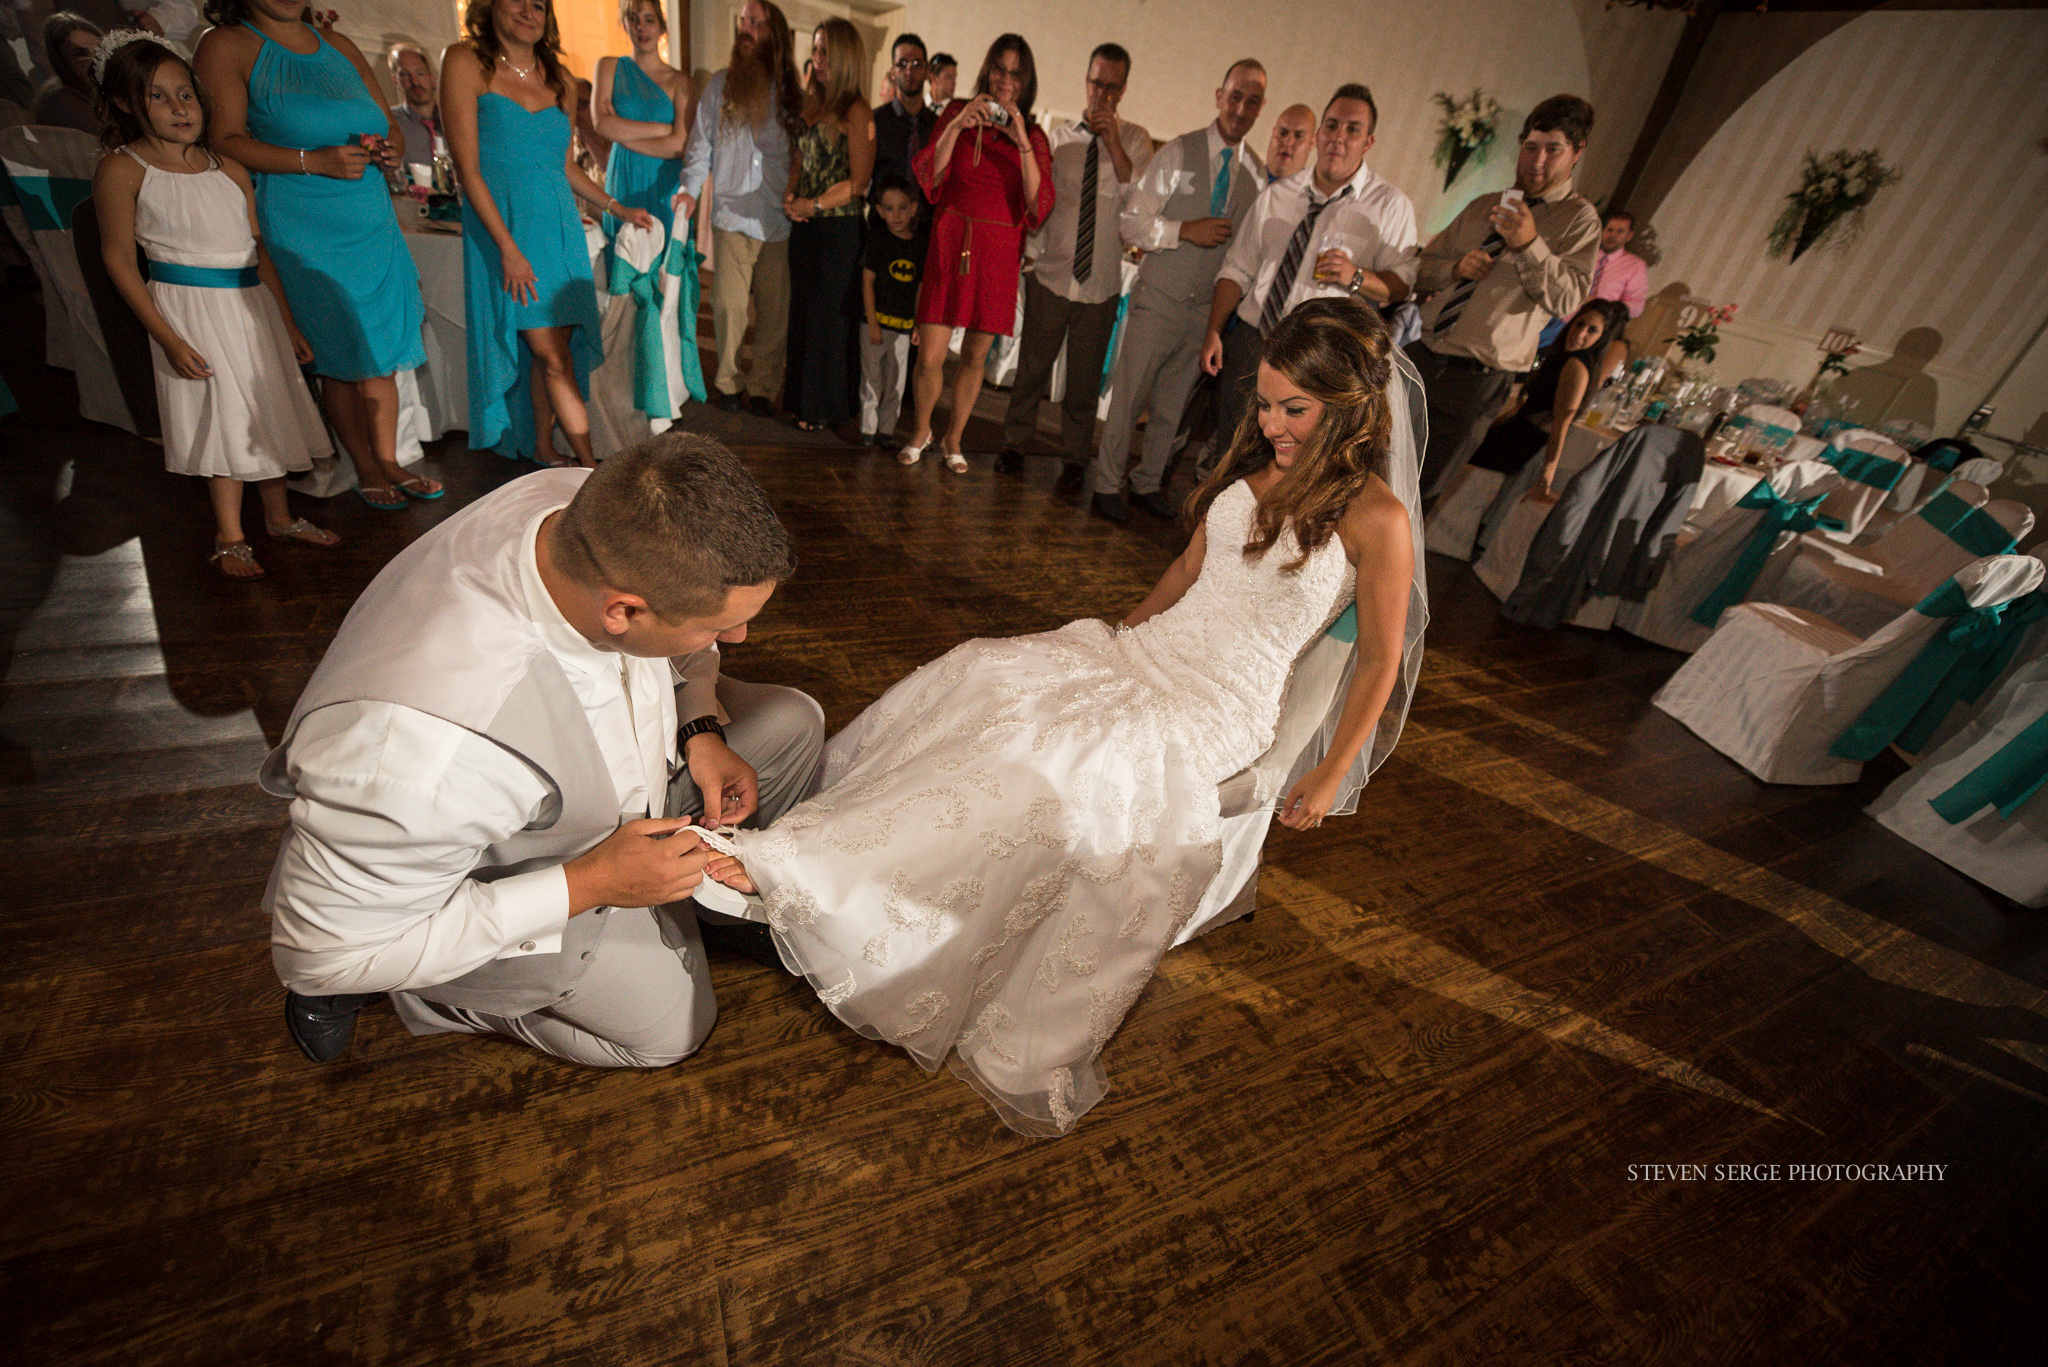 Clarks-Summit-PA-NEPA-Wedding-Photographer-Inn-Abingtons-Party-photography-steven-serge-53.jpg